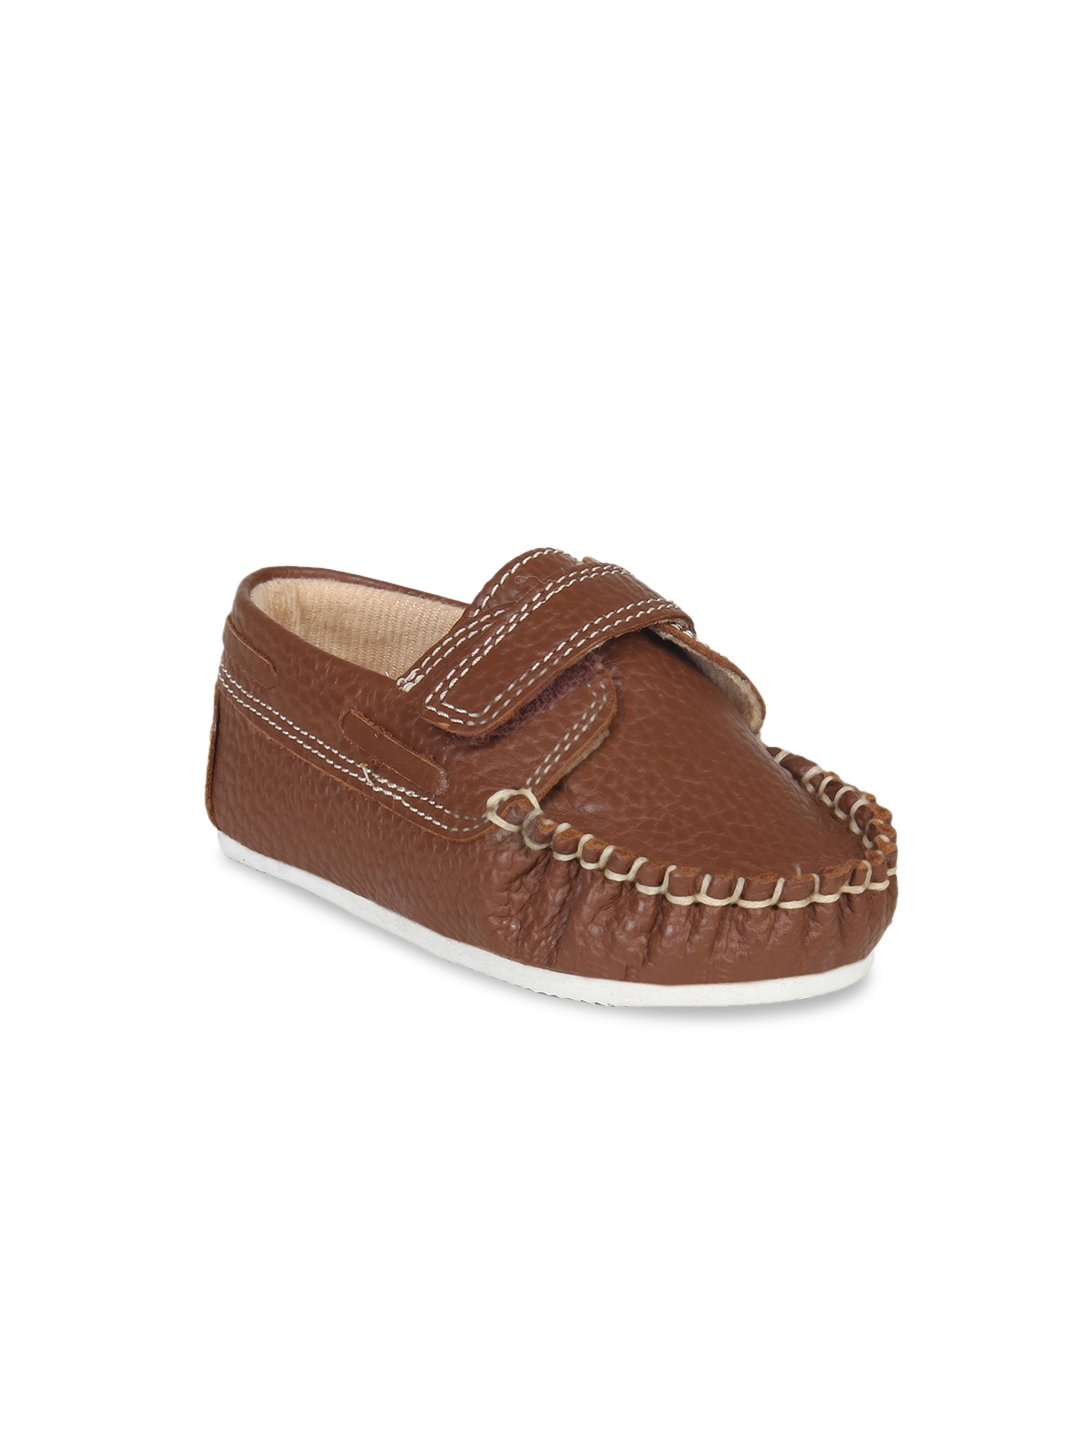 3dbd29bbc02 Buy Beanz Boys Brown Leather Loafers - Casual Shoes for Boys 6499714 ...